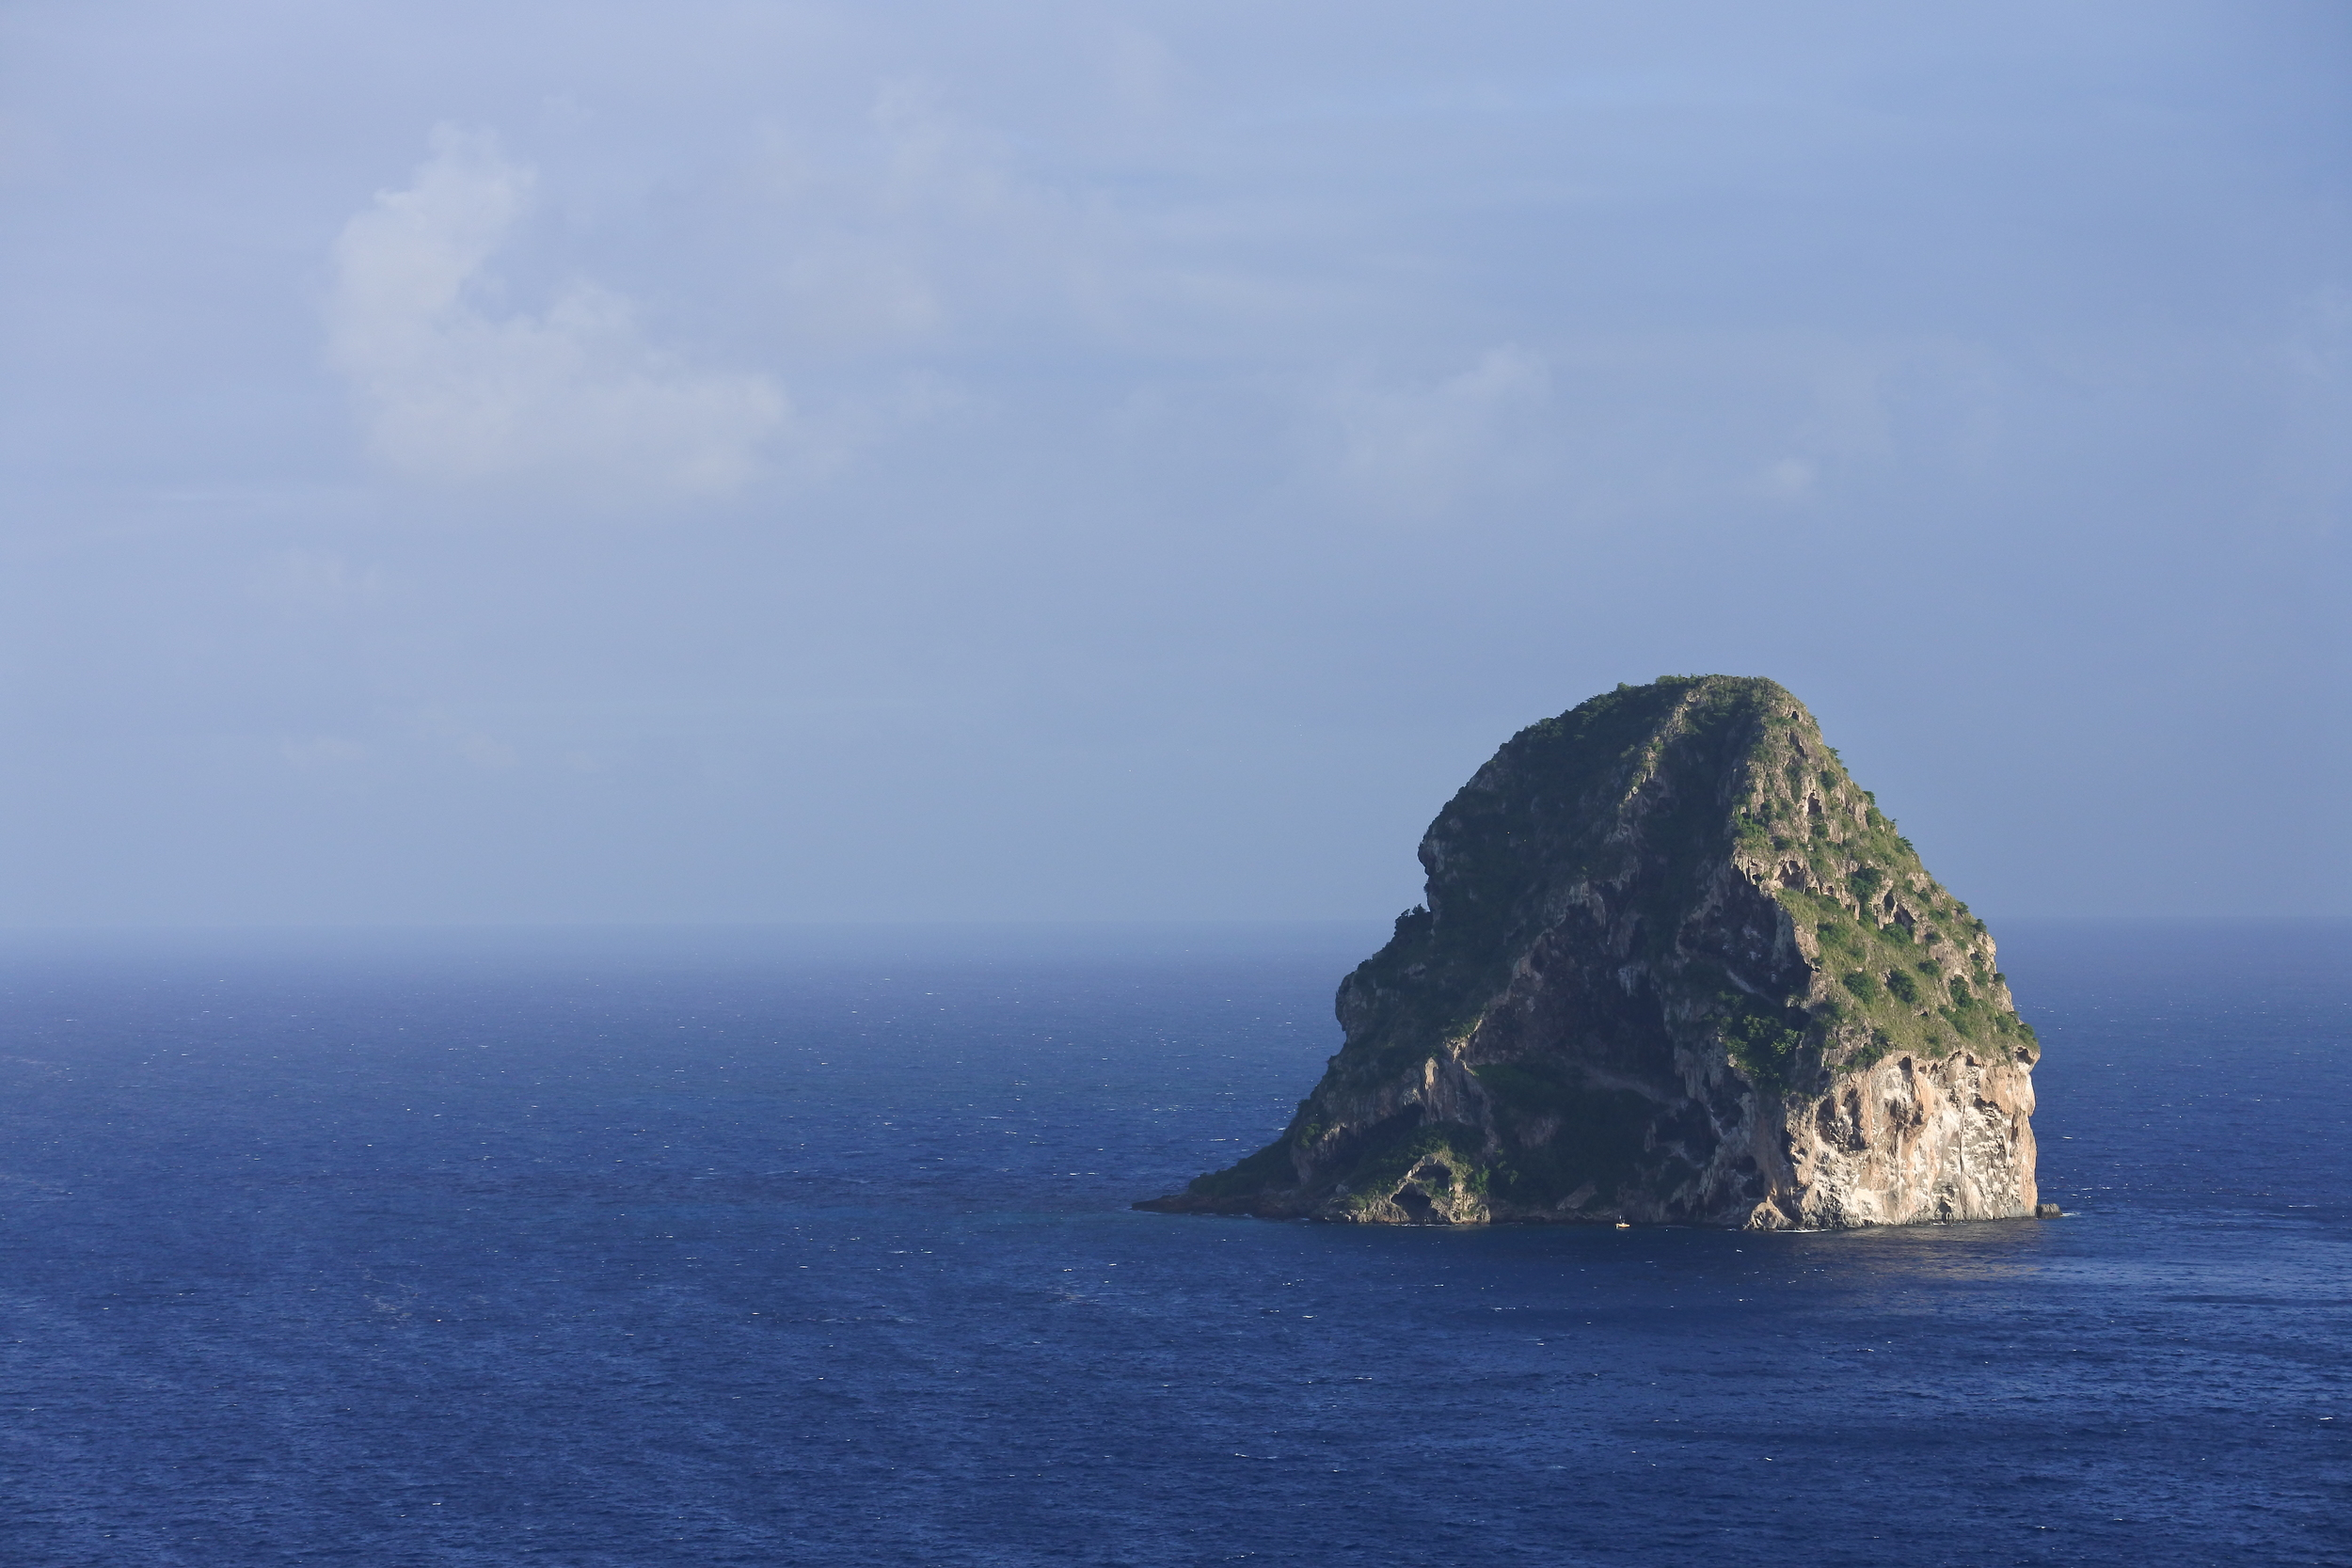 Diamond Rock, sits ominously off the coast of Le Diamant like the lair of a Bond film villain.